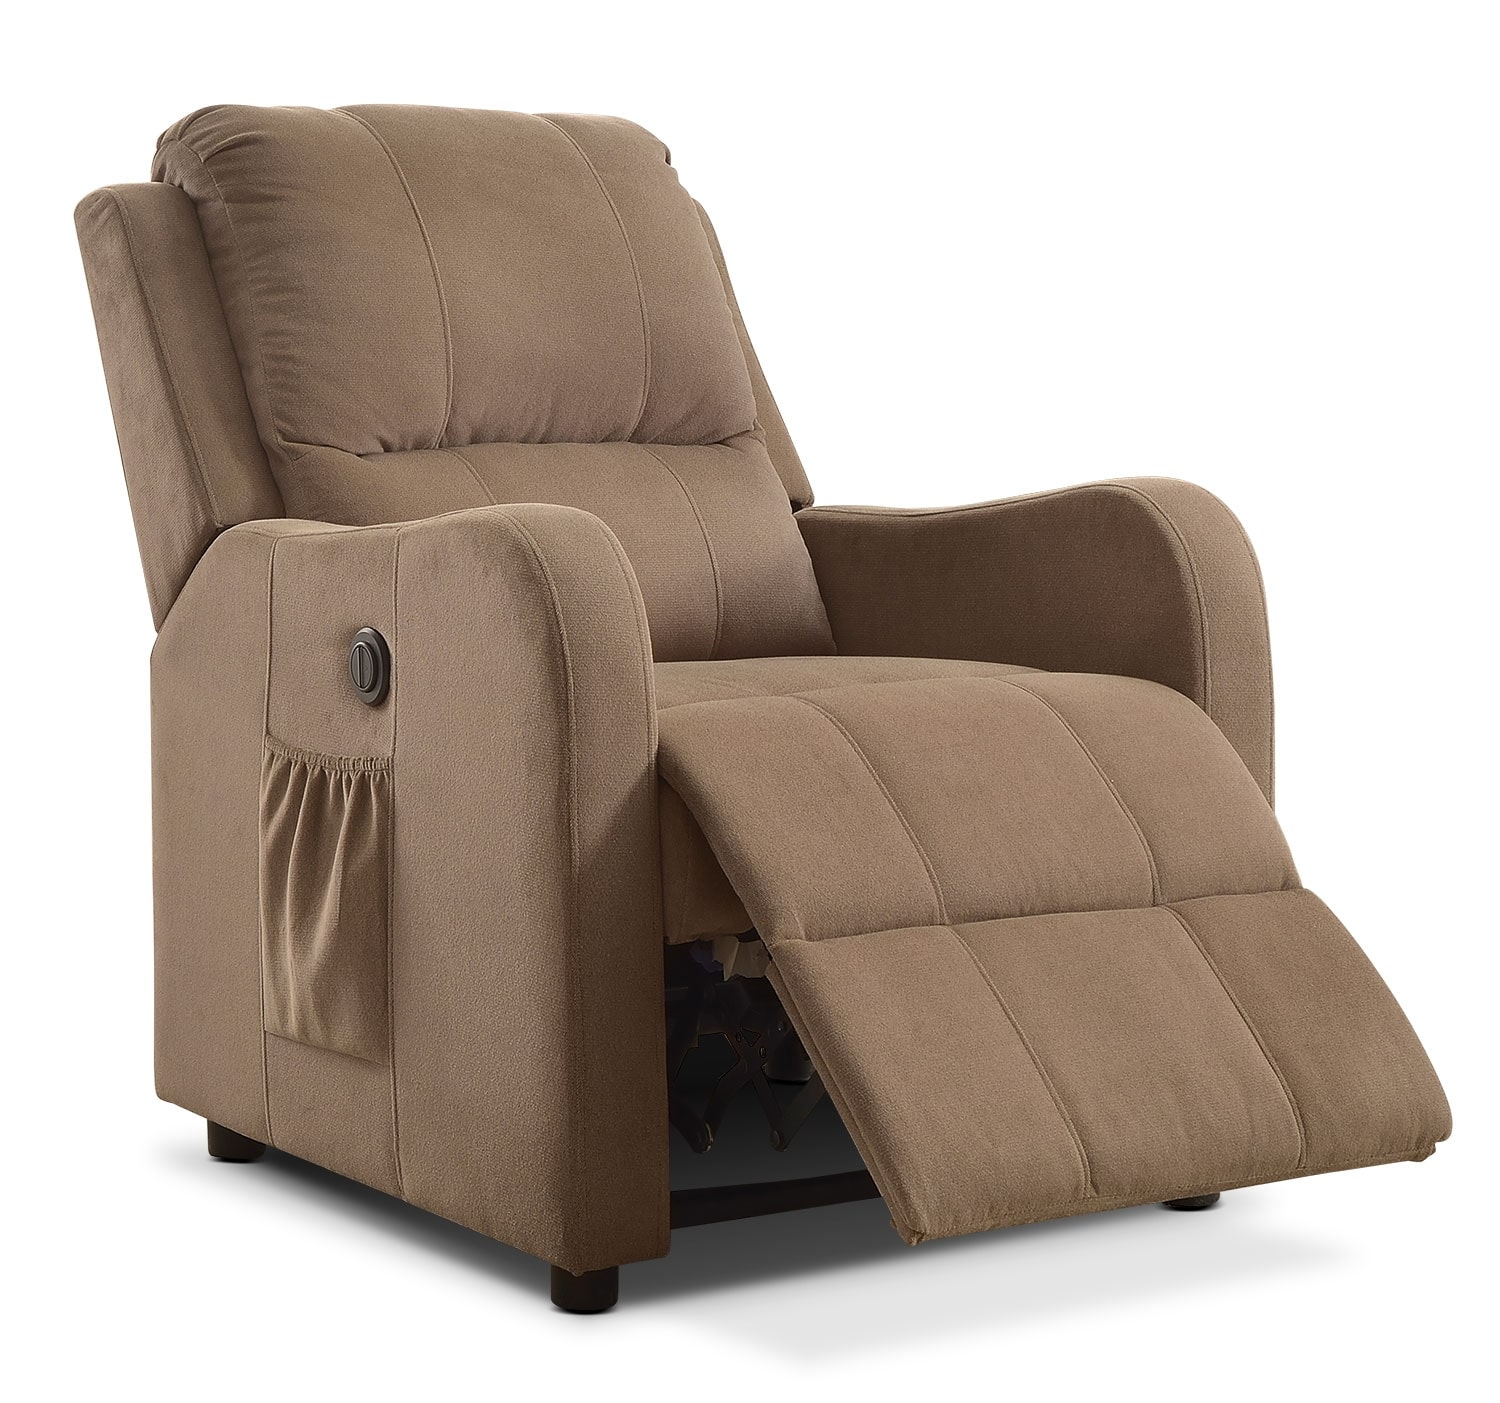 [Narnio Power Recliner]